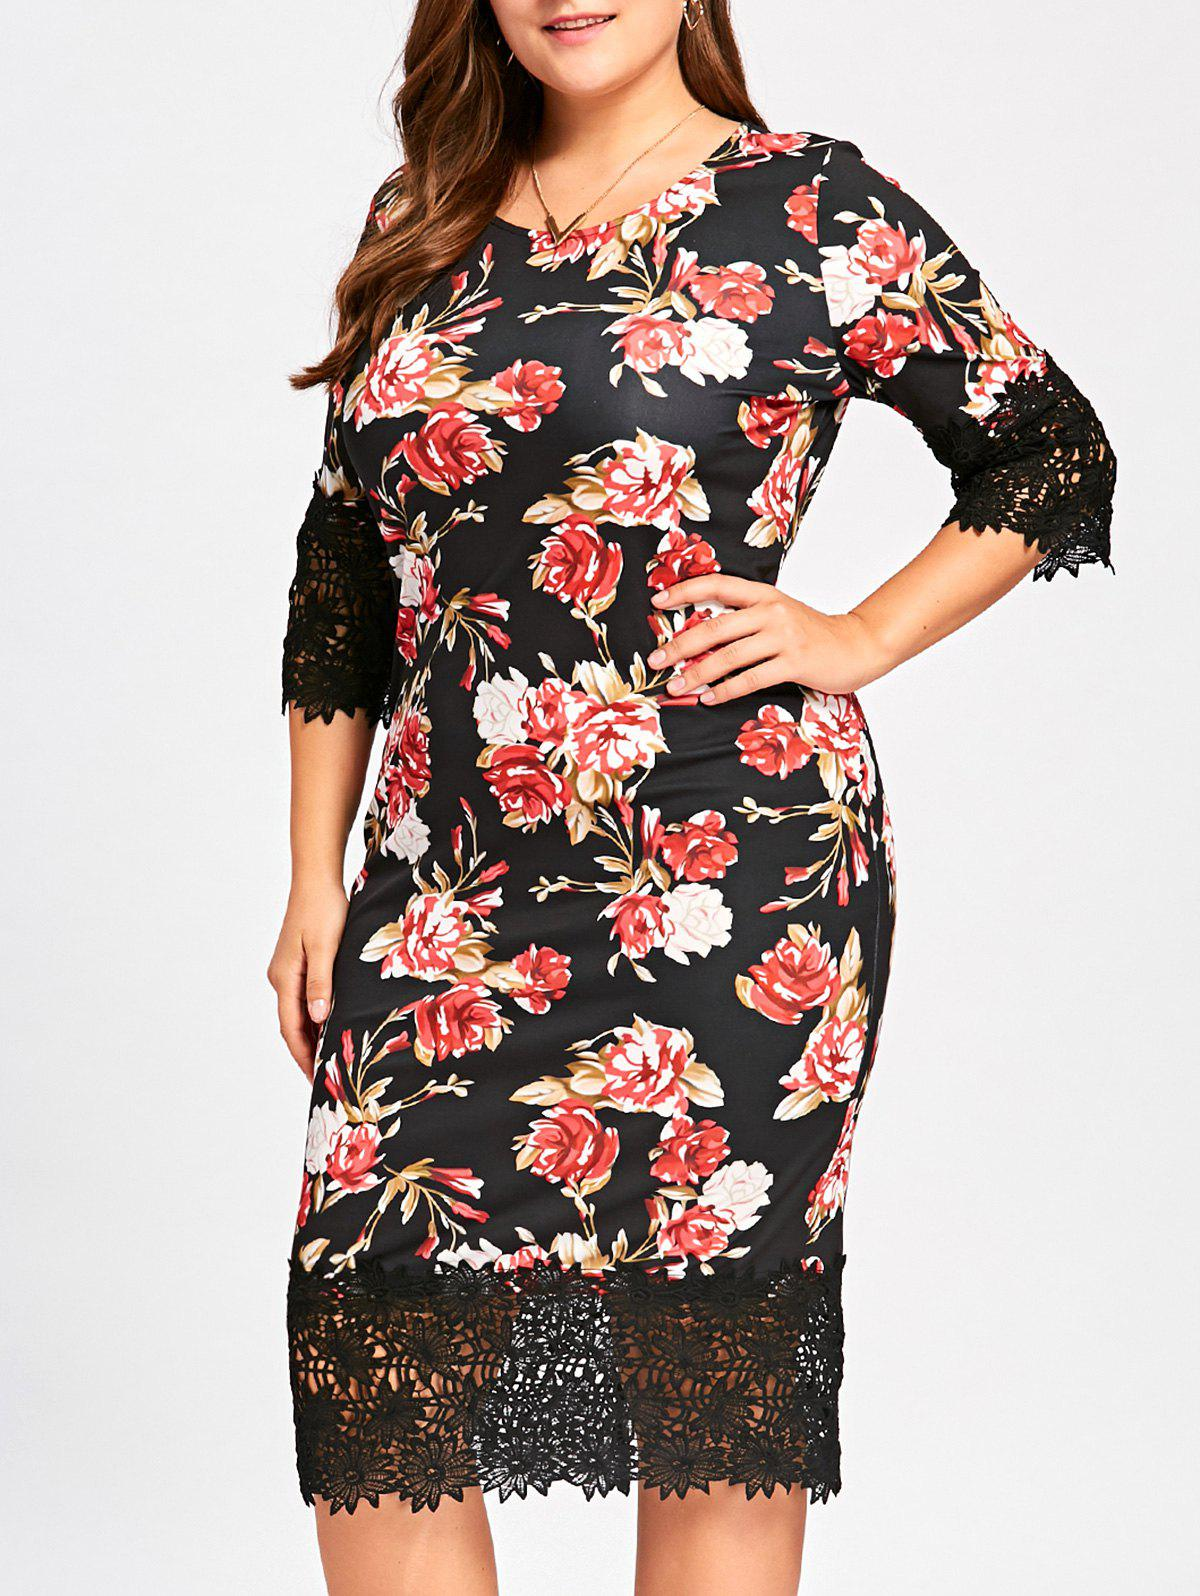 Midi Floral Sheath Plus Size DressWOMEN<br><br>Size: 5XL; Color: FLORAL; Style: Brief; Material: Polyester,Spandex; Silhouette: Sheath; Dresses Length: Mid-Calf; Neckline: Round Collar; Sleeve Length: 3/4 Length Sleeves; Pattern Type: Floral; With Belt: No; Season: Fall,Spring; Weight: 0.4030kg; Package Contents: 1 x Dress;